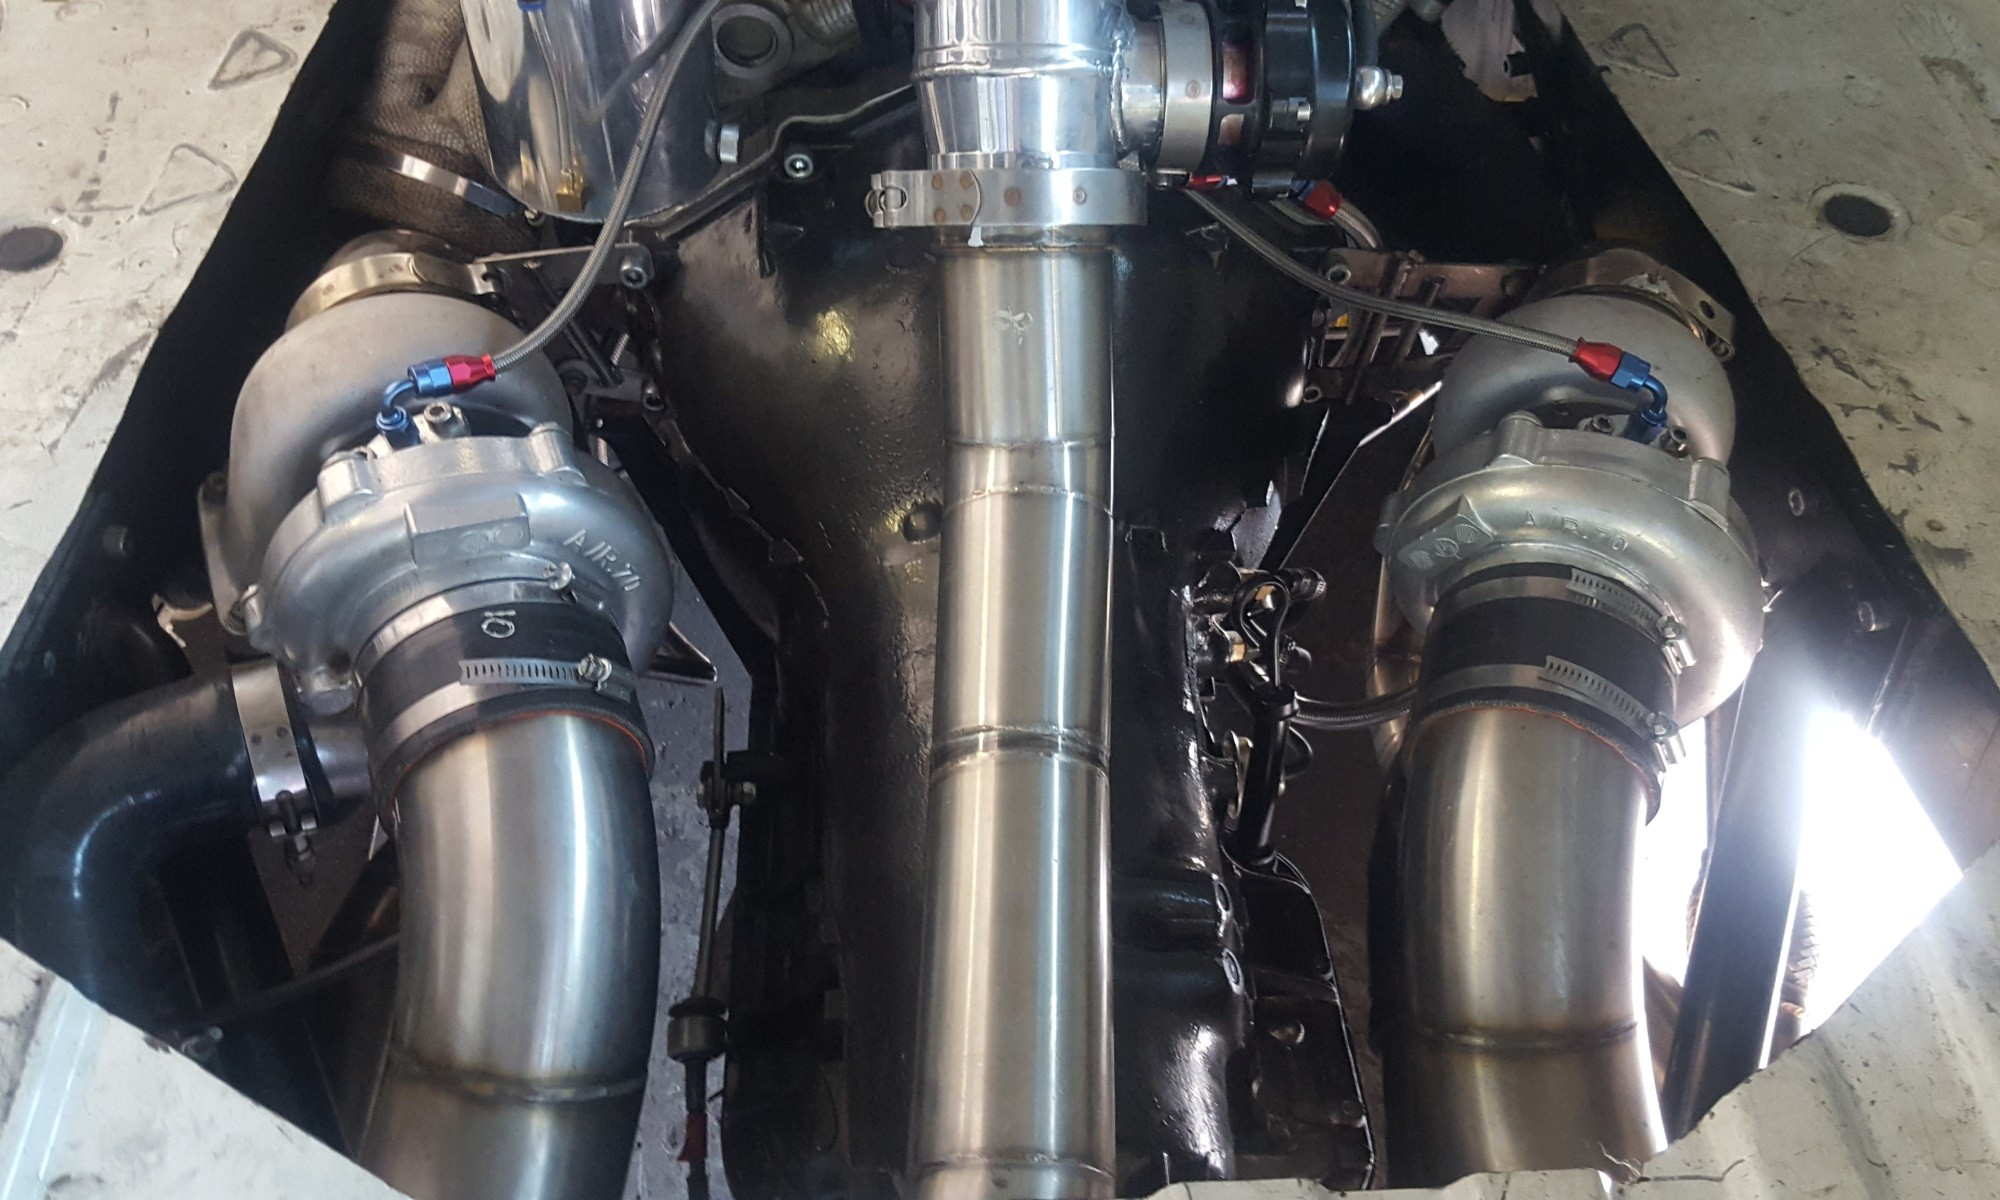 Two turbochargers feed the V12 motor